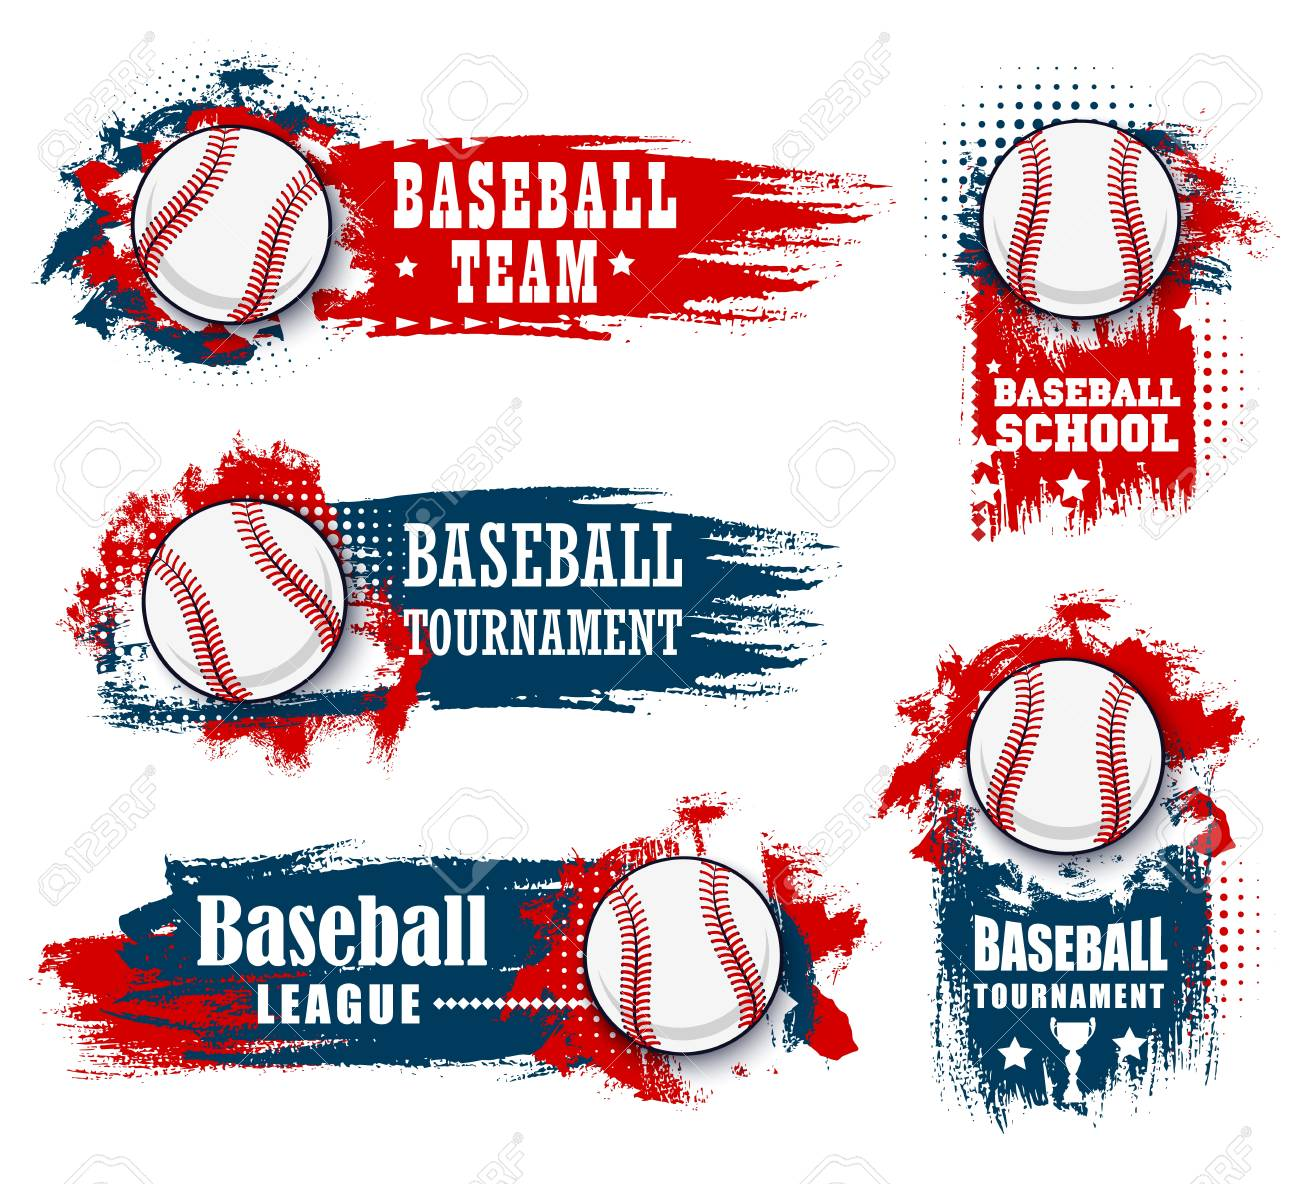 Baseball sport banners with halftone blue and red - 121171910